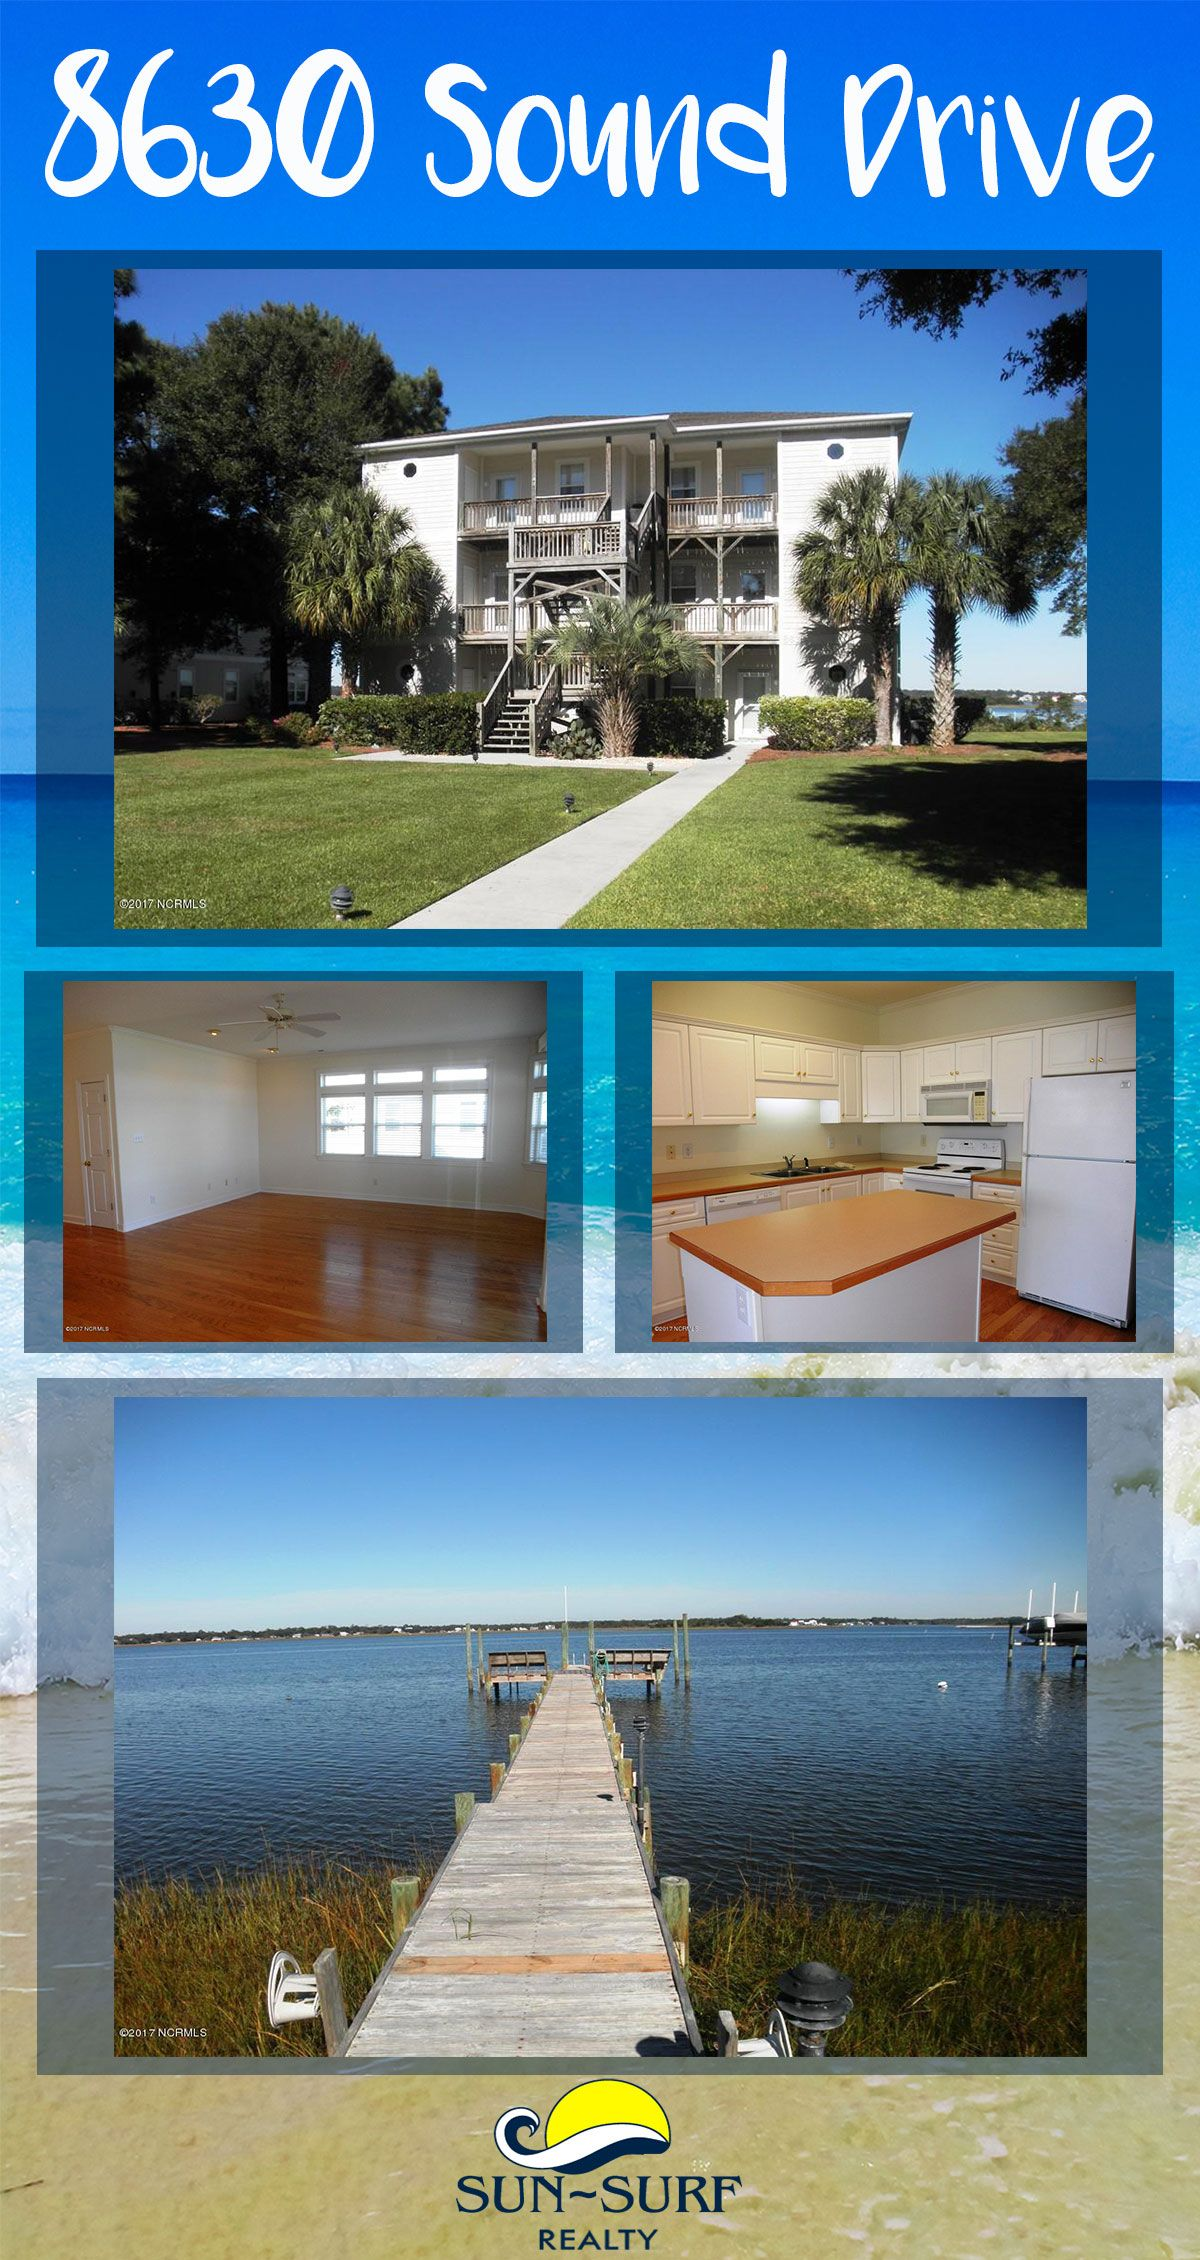 FOR SALE: This direct soundfront condo is located on the 2nd floor and on the west side. You can own a slice of paradise and have amazing views of bogue sound, the EI bridge and sunset. 2 bedrooms/2 baths. Call for a viewing appointment today!